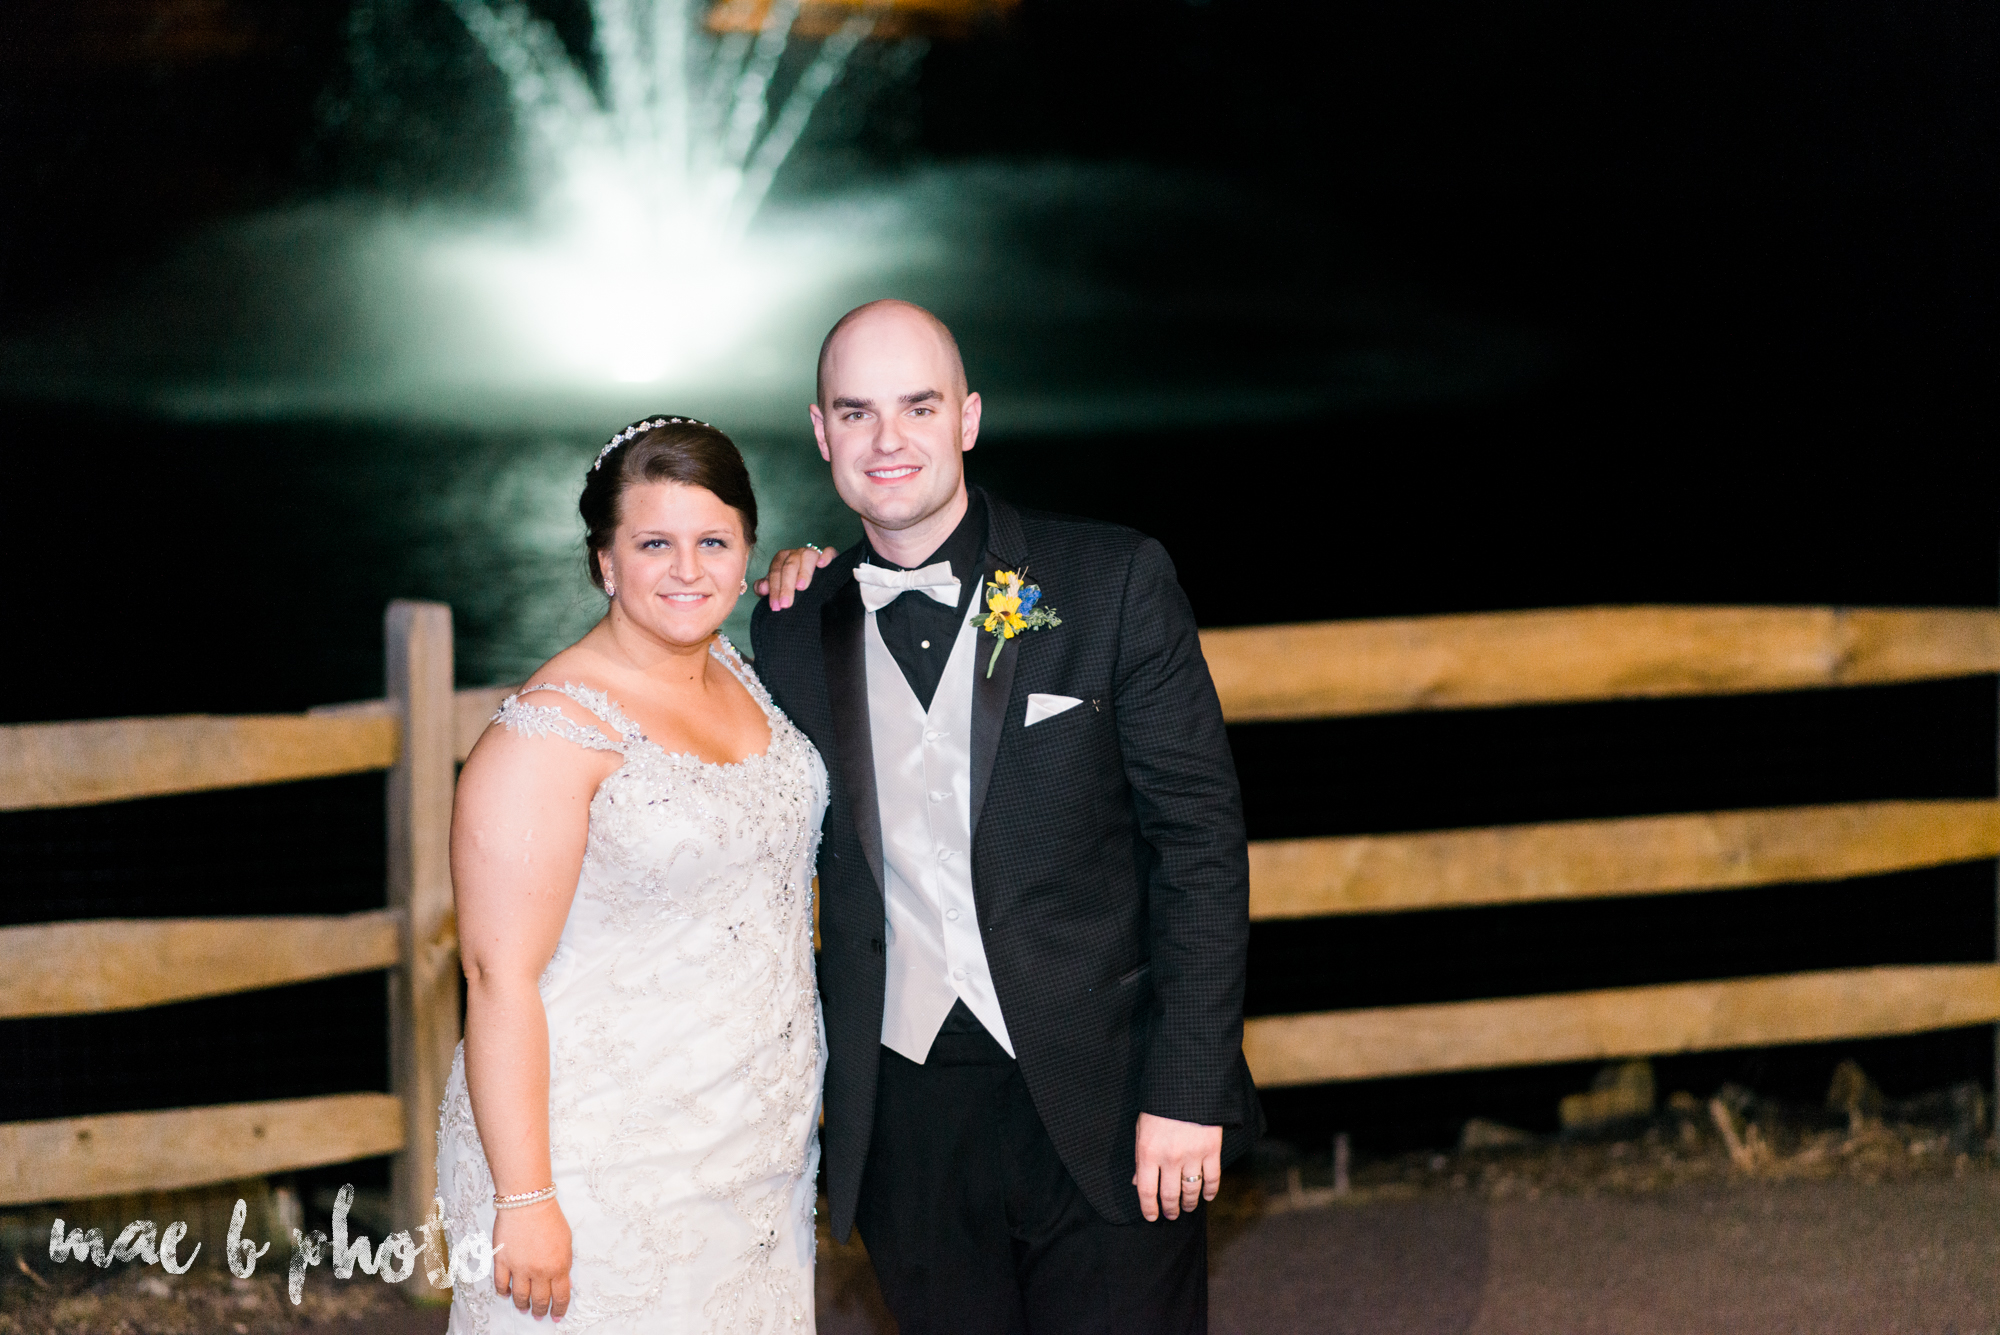 kaylynn & matt's fall zoo wedding at the cleveland metroparks zoo in cleveland ohio photographed by mae b photo-68.jpg